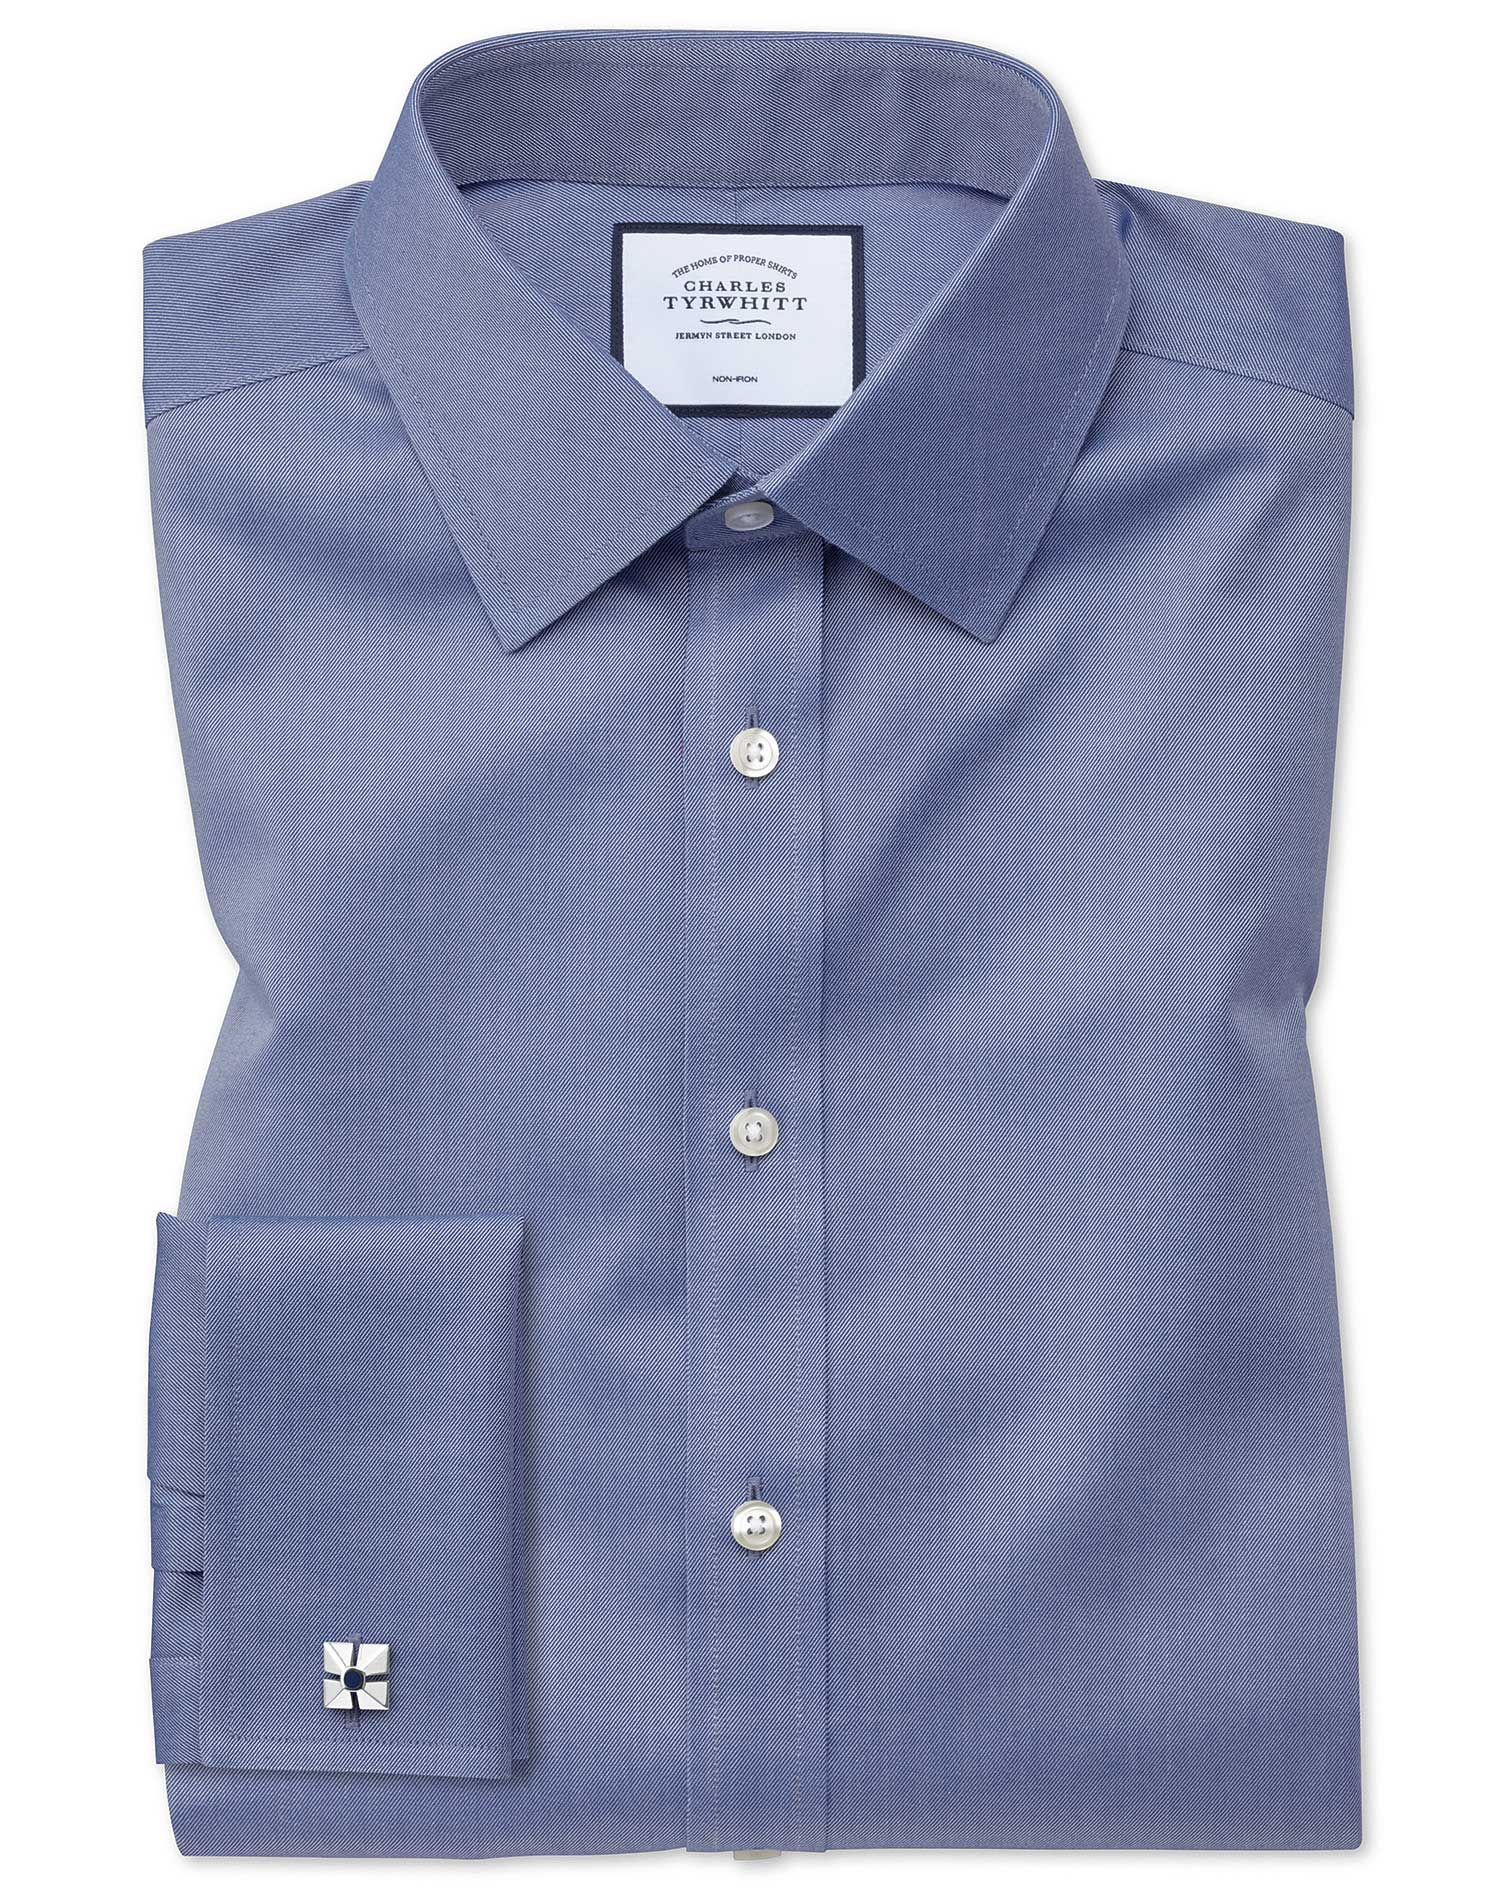 Classic Fit Non-Iron Twill Mid Blue Cotton Formal Shirt Single Cuff Size 16.5/36 by Charles Tyrwhitt